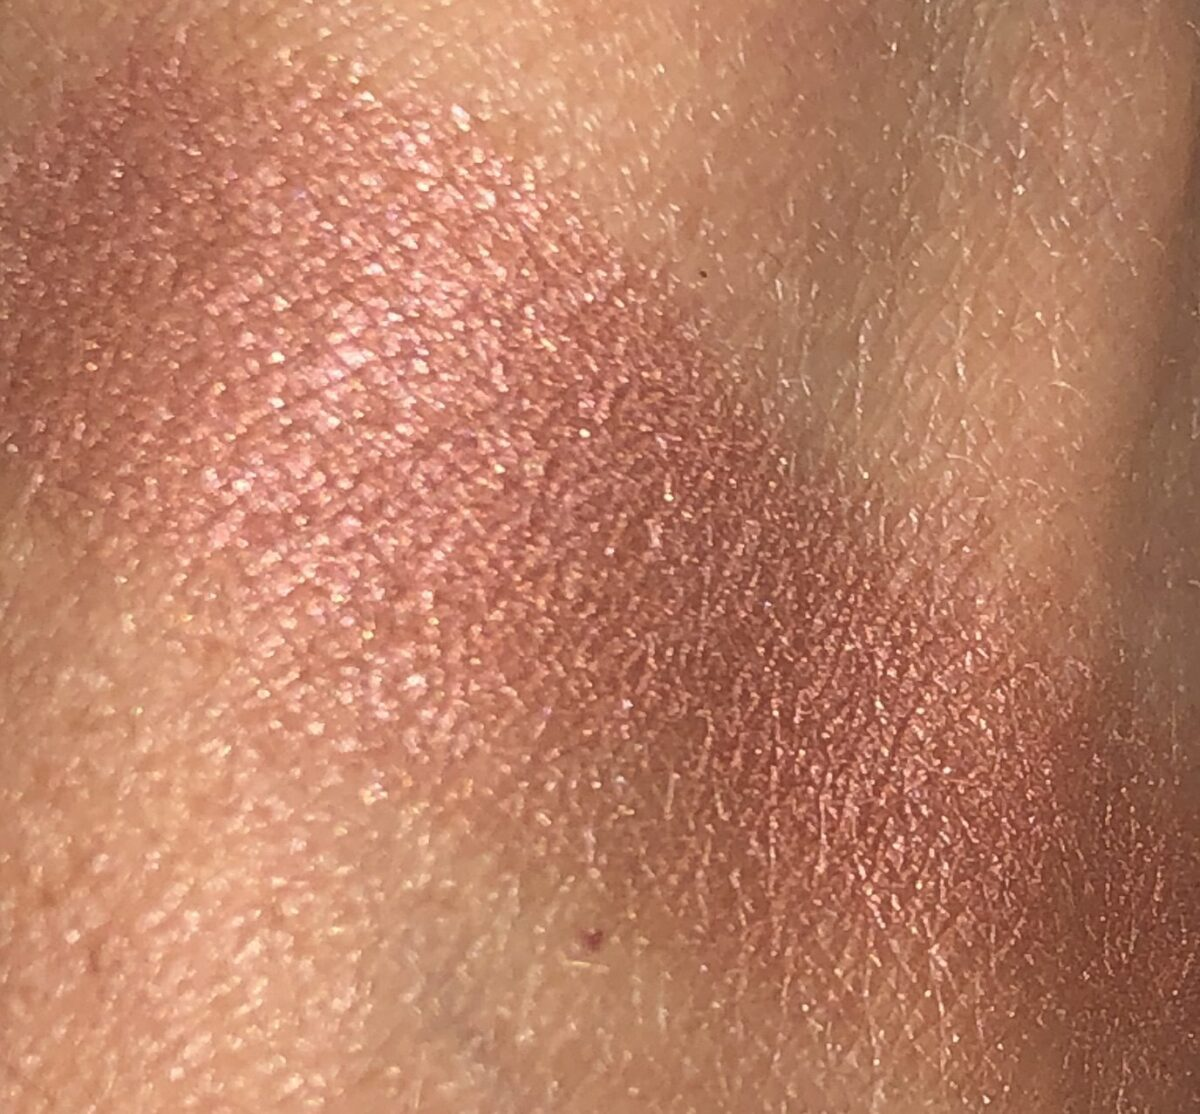 Les Chaines De Chanel Illuminating Blush Powder swatch